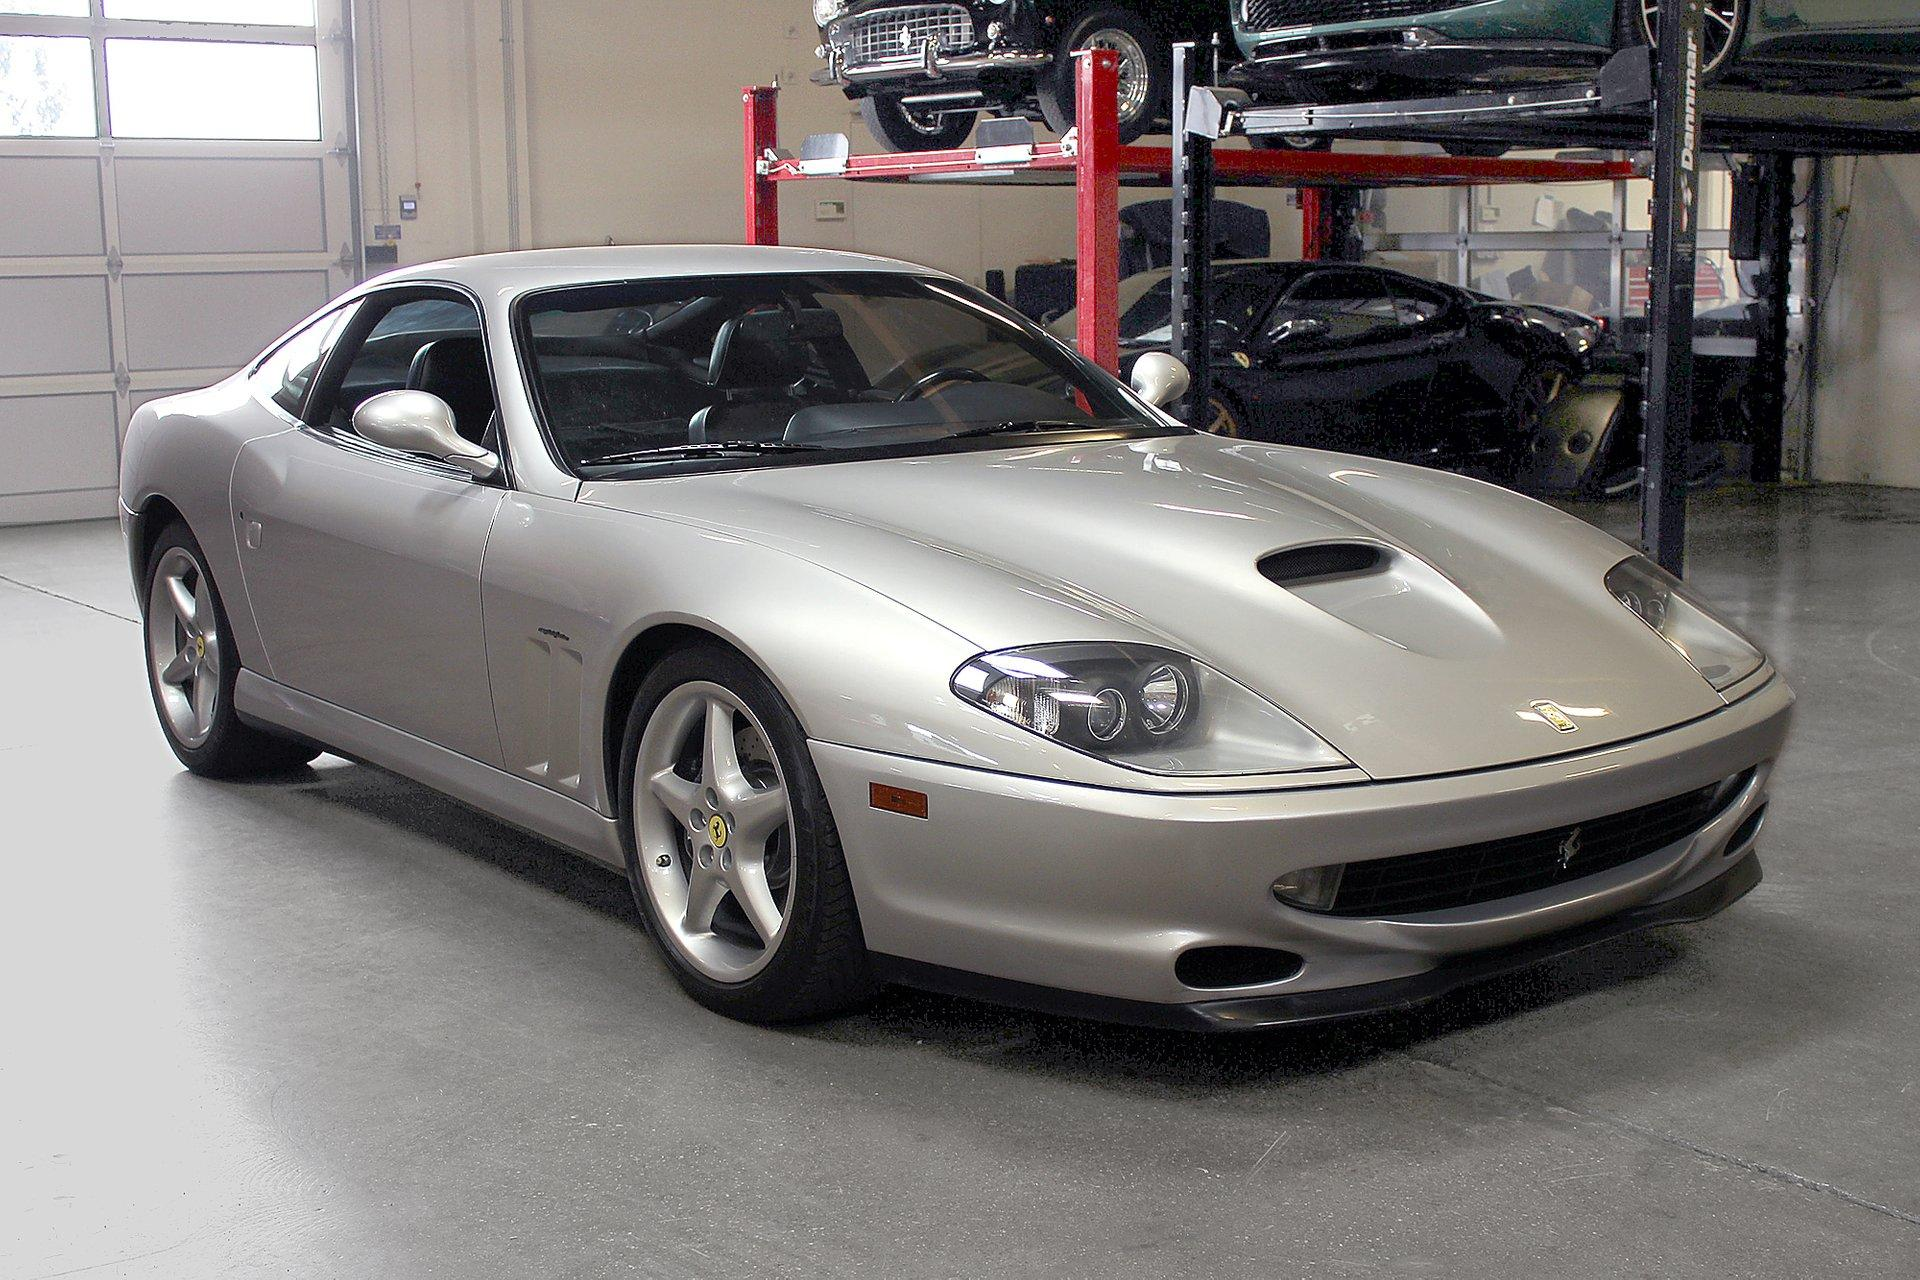 Used 1997 Ferrari 550 Maranello for sale Sold at San Francisco Sports Cars in San Carlos CA 94070 1